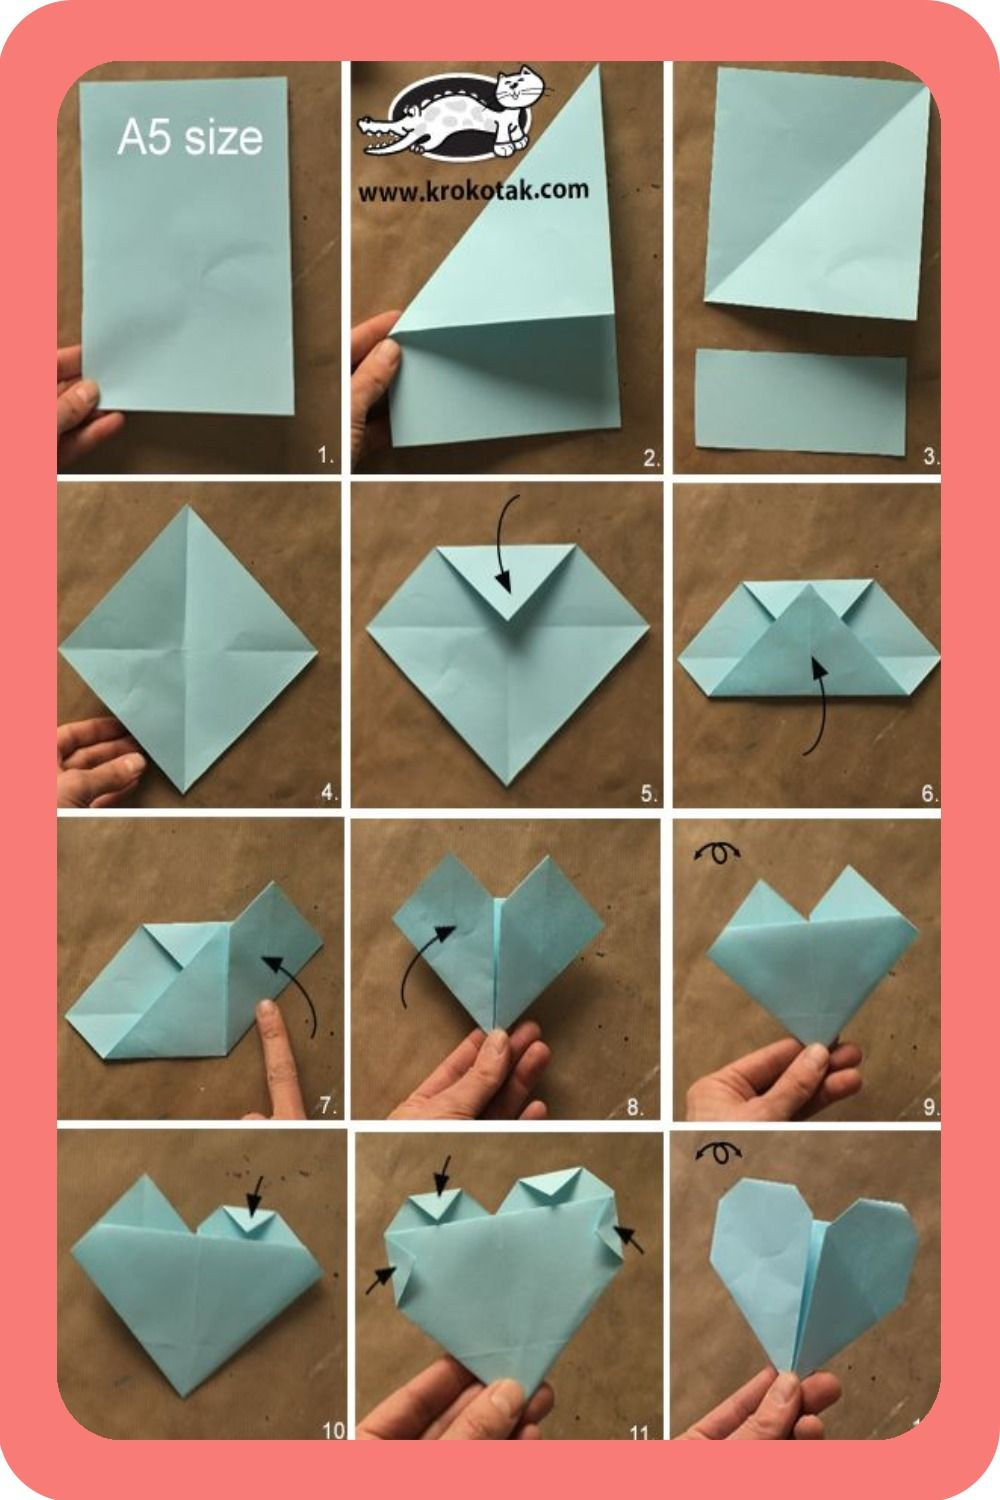 Paper Stuffing Paper Foxes Tutorial Paper Hearts Origami Origami Heart Origami Design